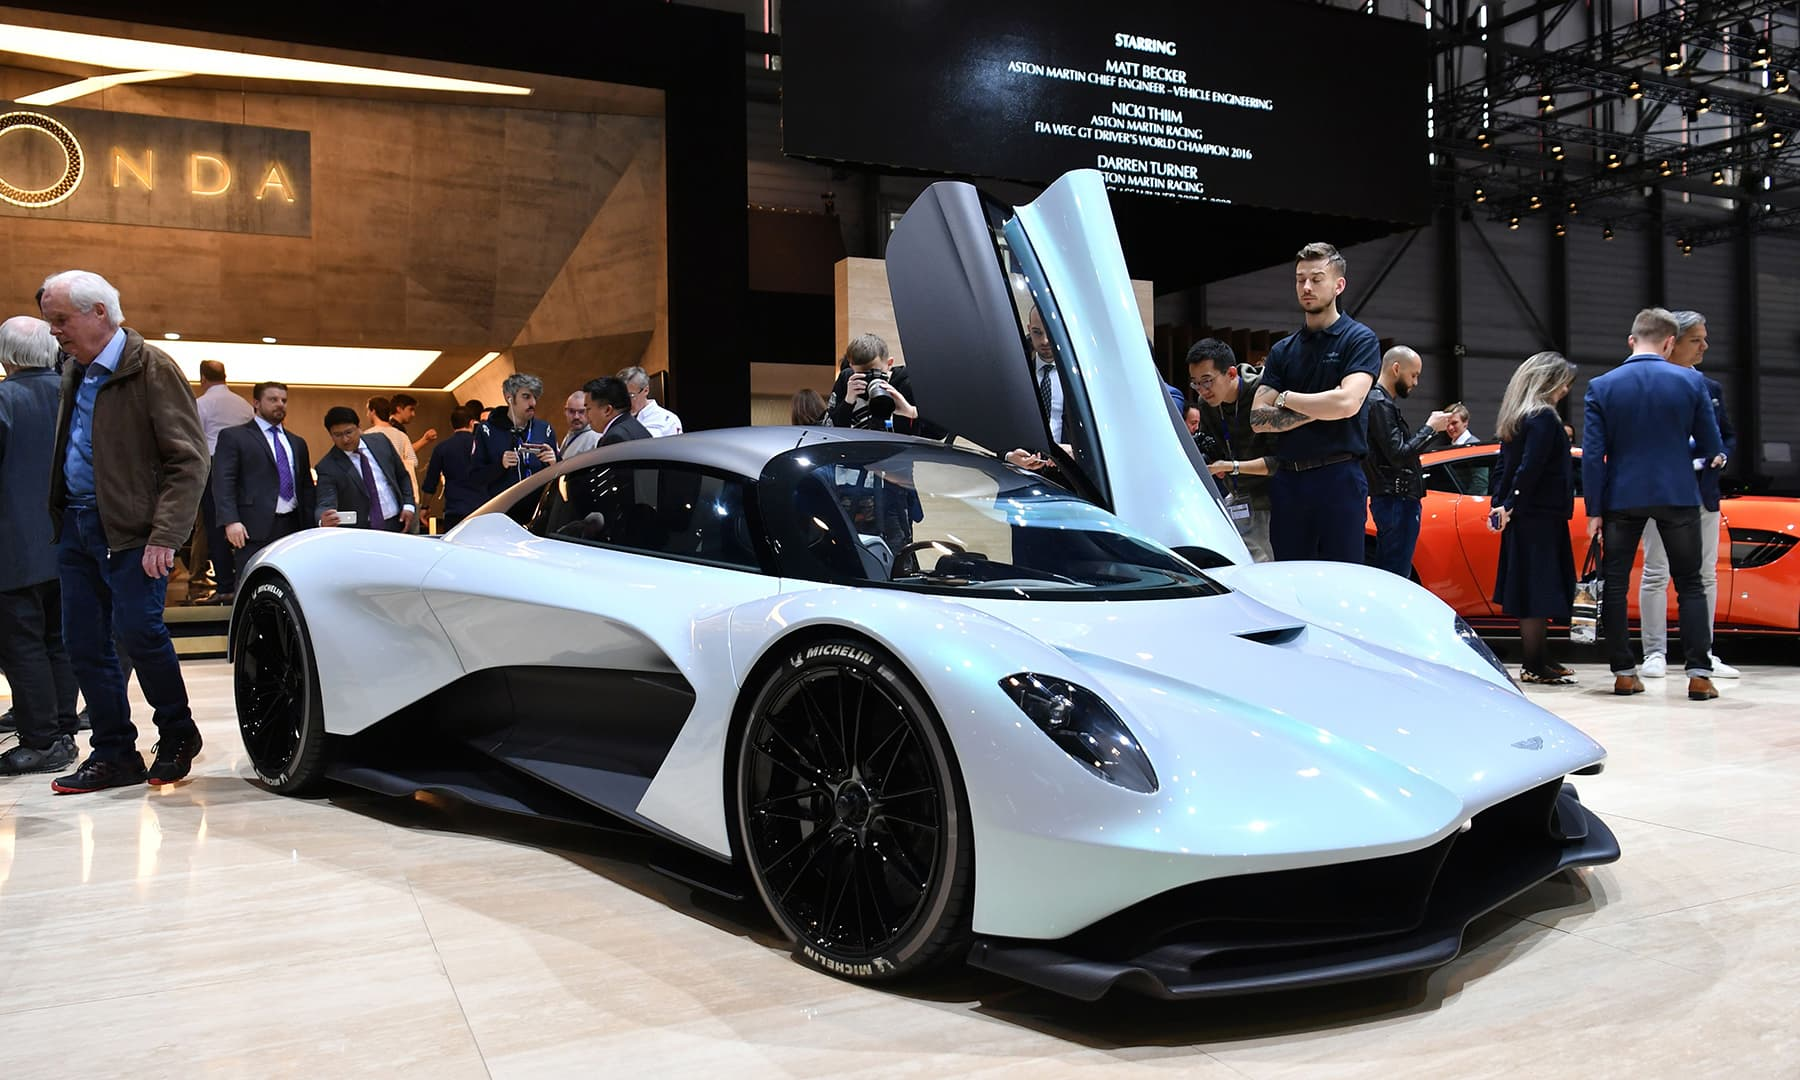 The Aston Martin AM-RB 003 is displayed during a press day ahead of the Geneva International Motor Show in Geneva. — AFP